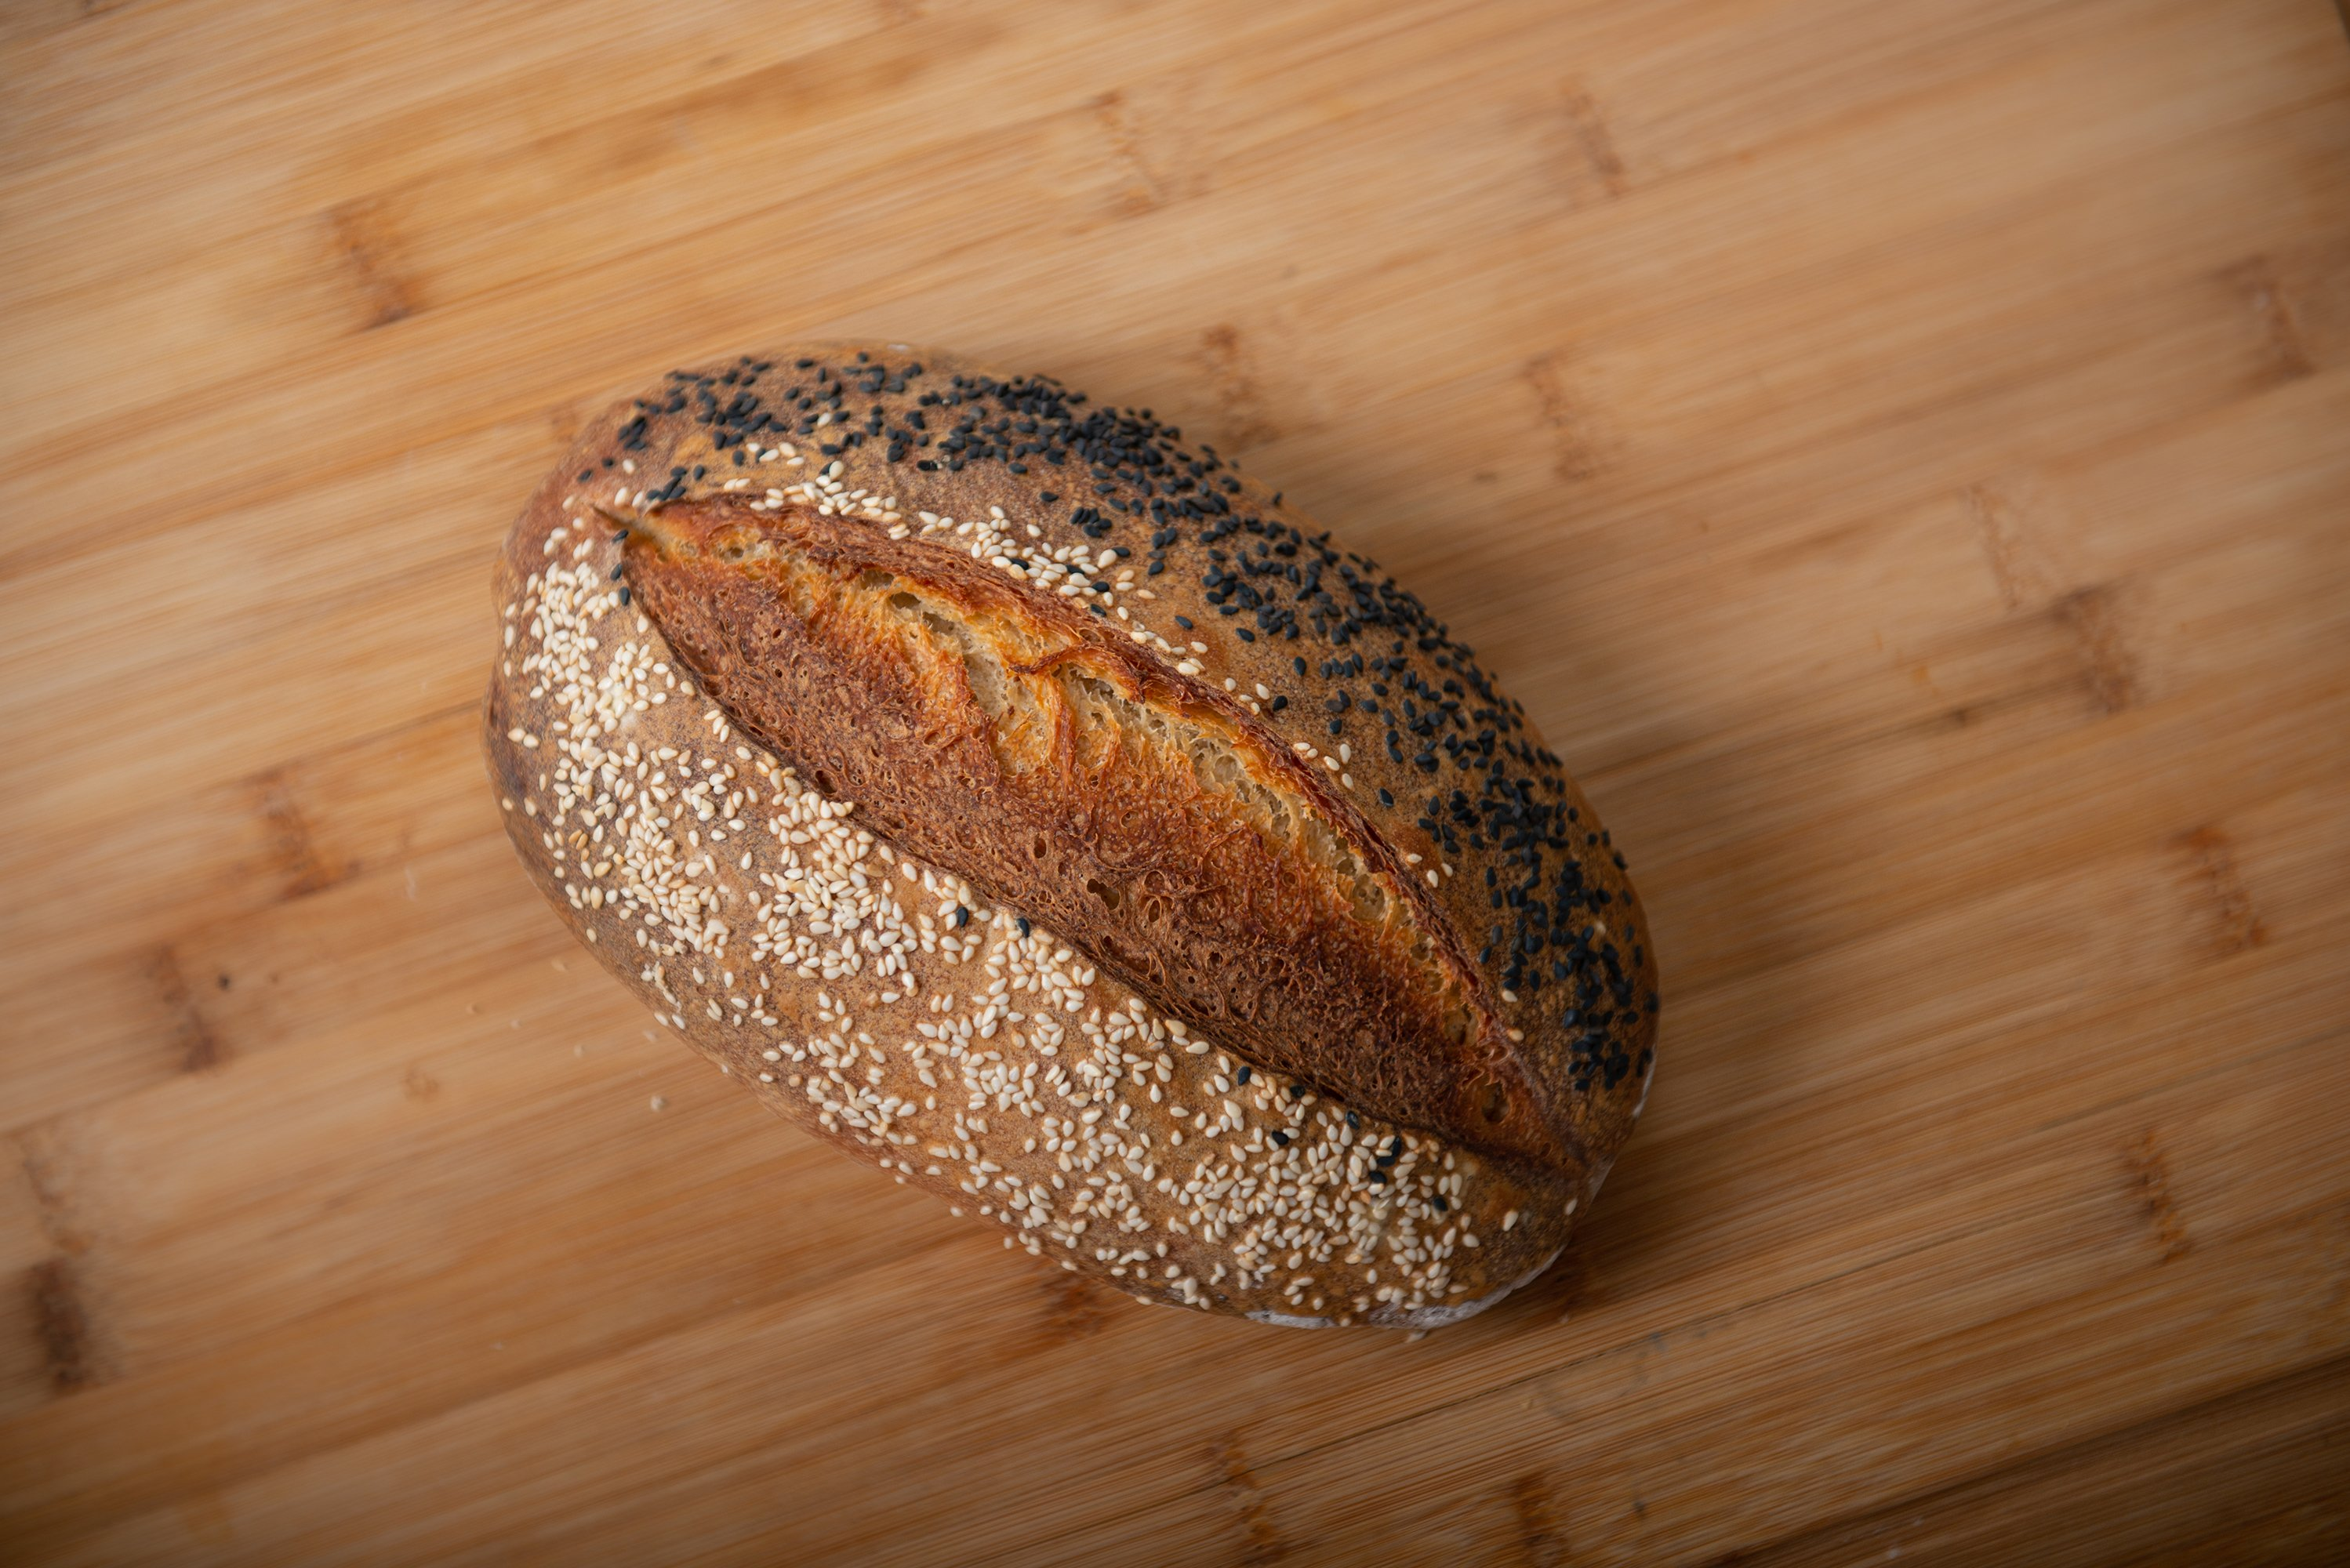 craft bread is sprinkled with white and black sesame seeds example image 1